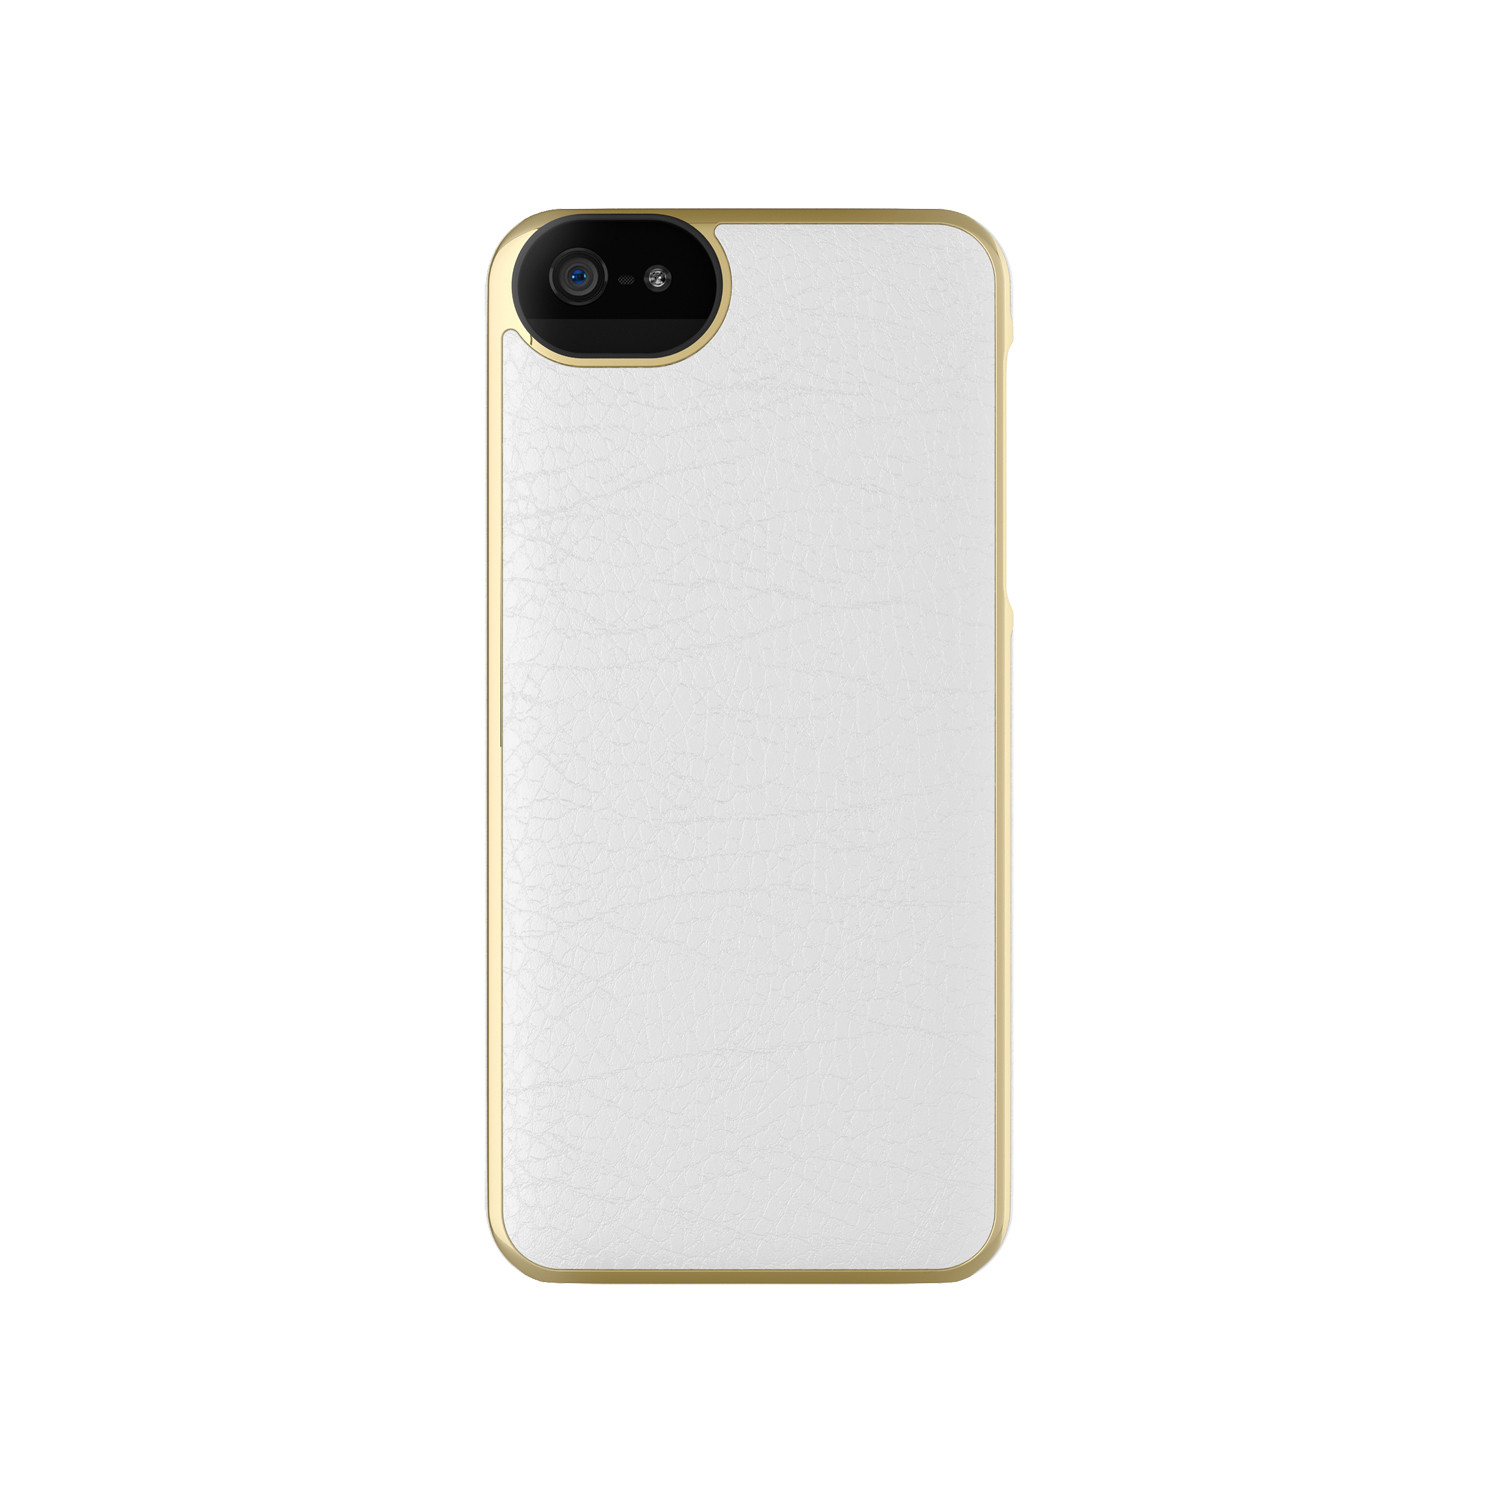 iphone 5s white and gold leather wrap for iphone 5 5s white gold 3302